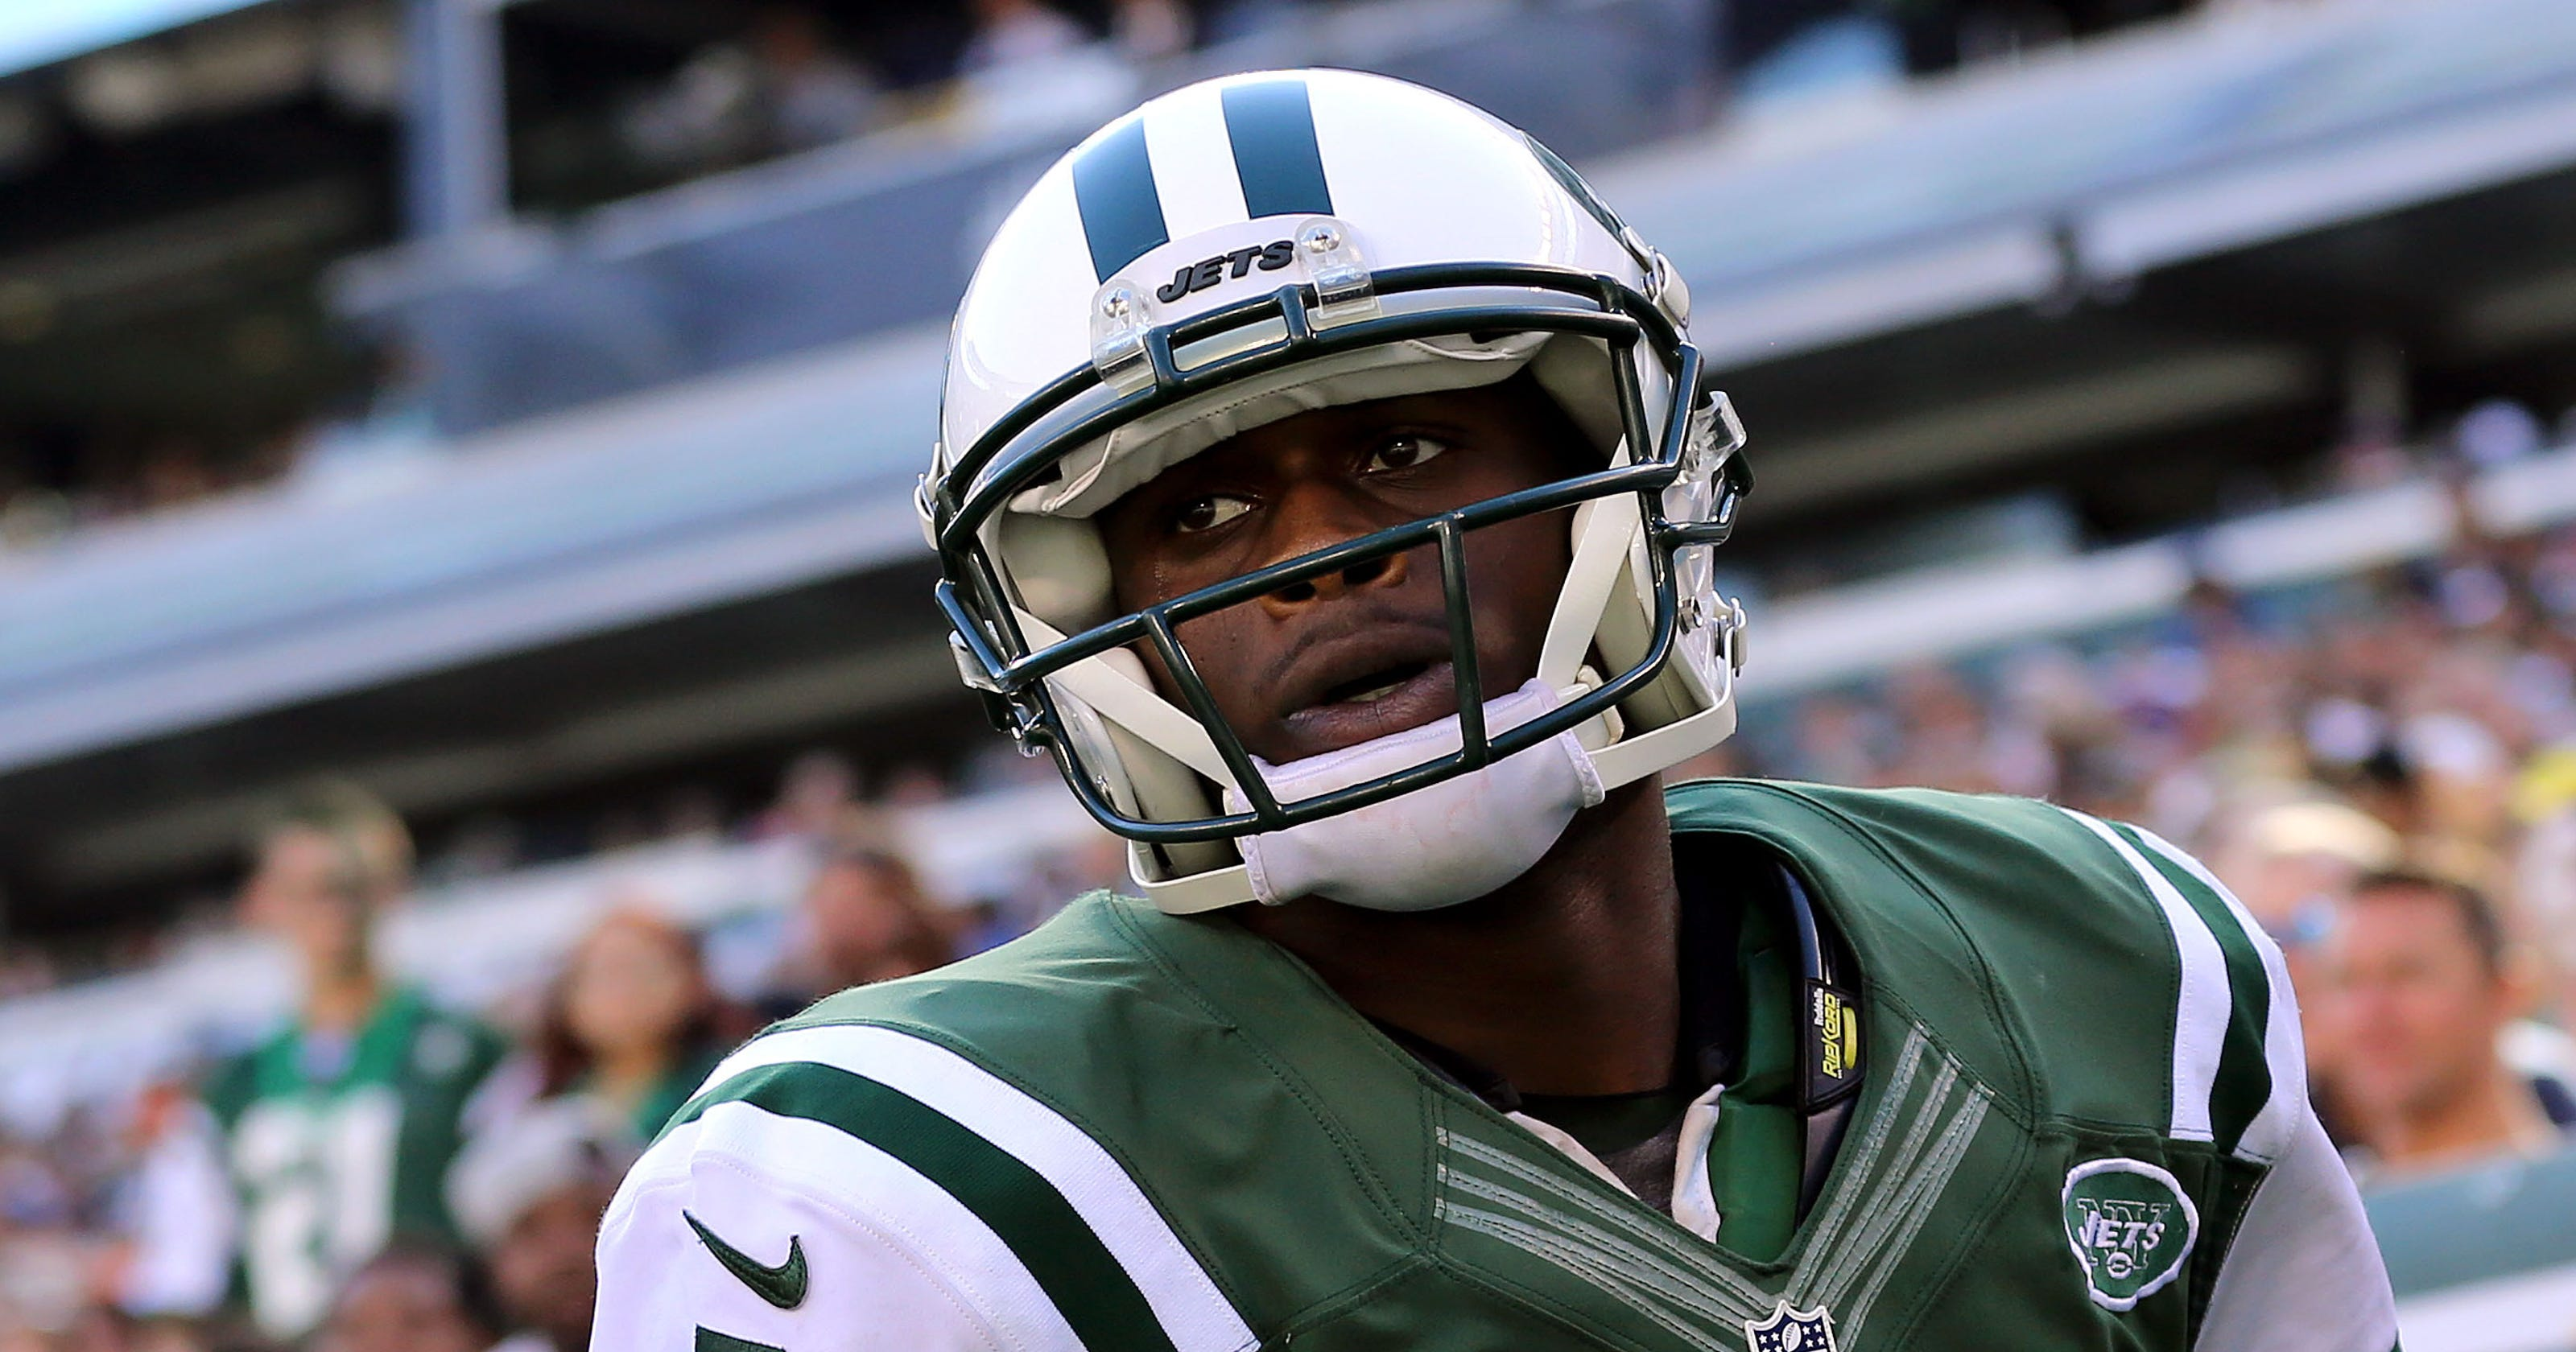 e92e8d9f5 Armour  Geno Smith breaking jaw is ultimate Jets moment